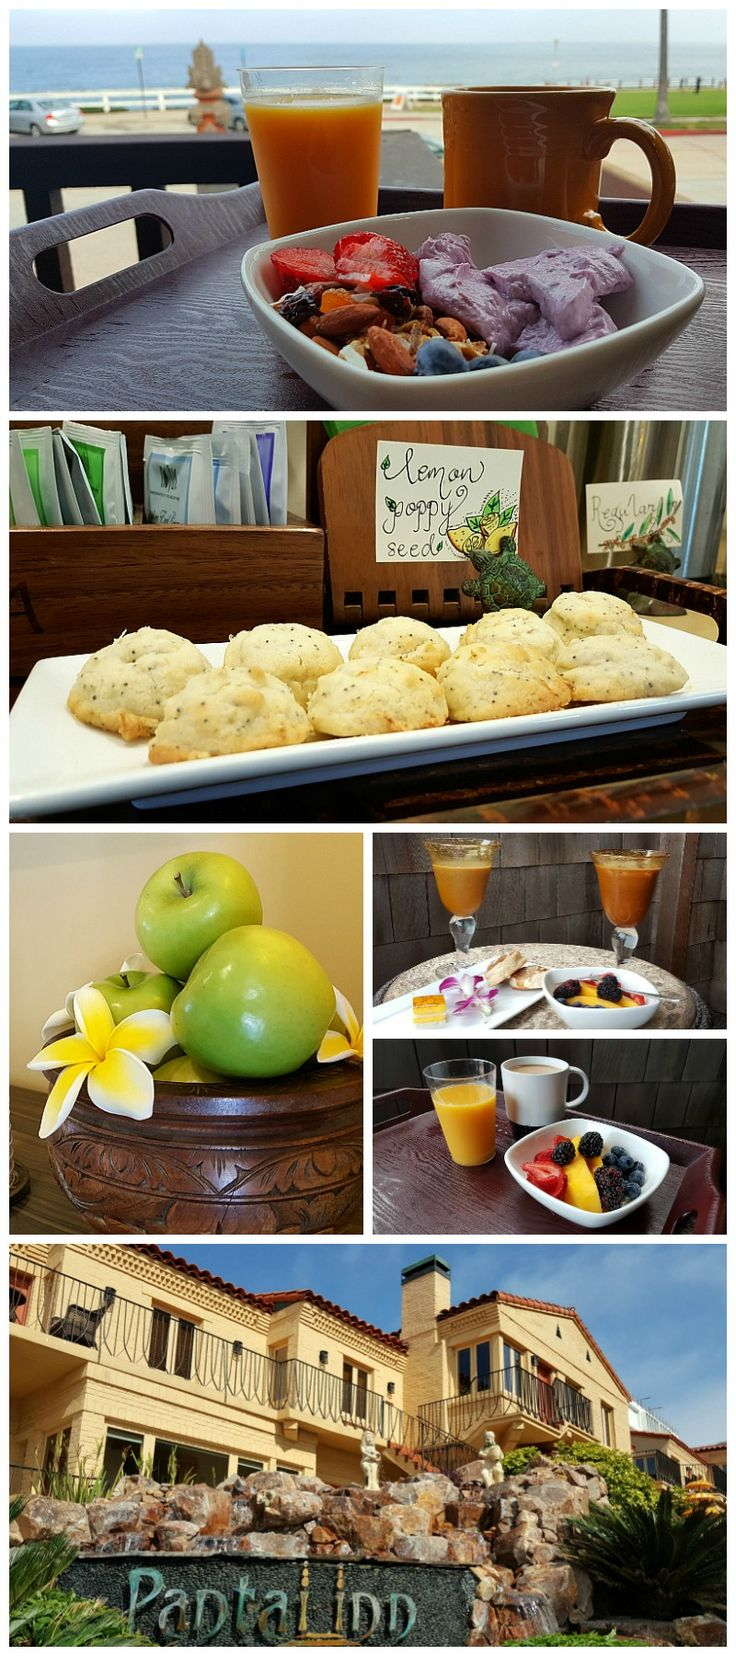 Breakfast (and more!) at Pantai Inn, La Jolla - San Diego, California Luxury Hotel